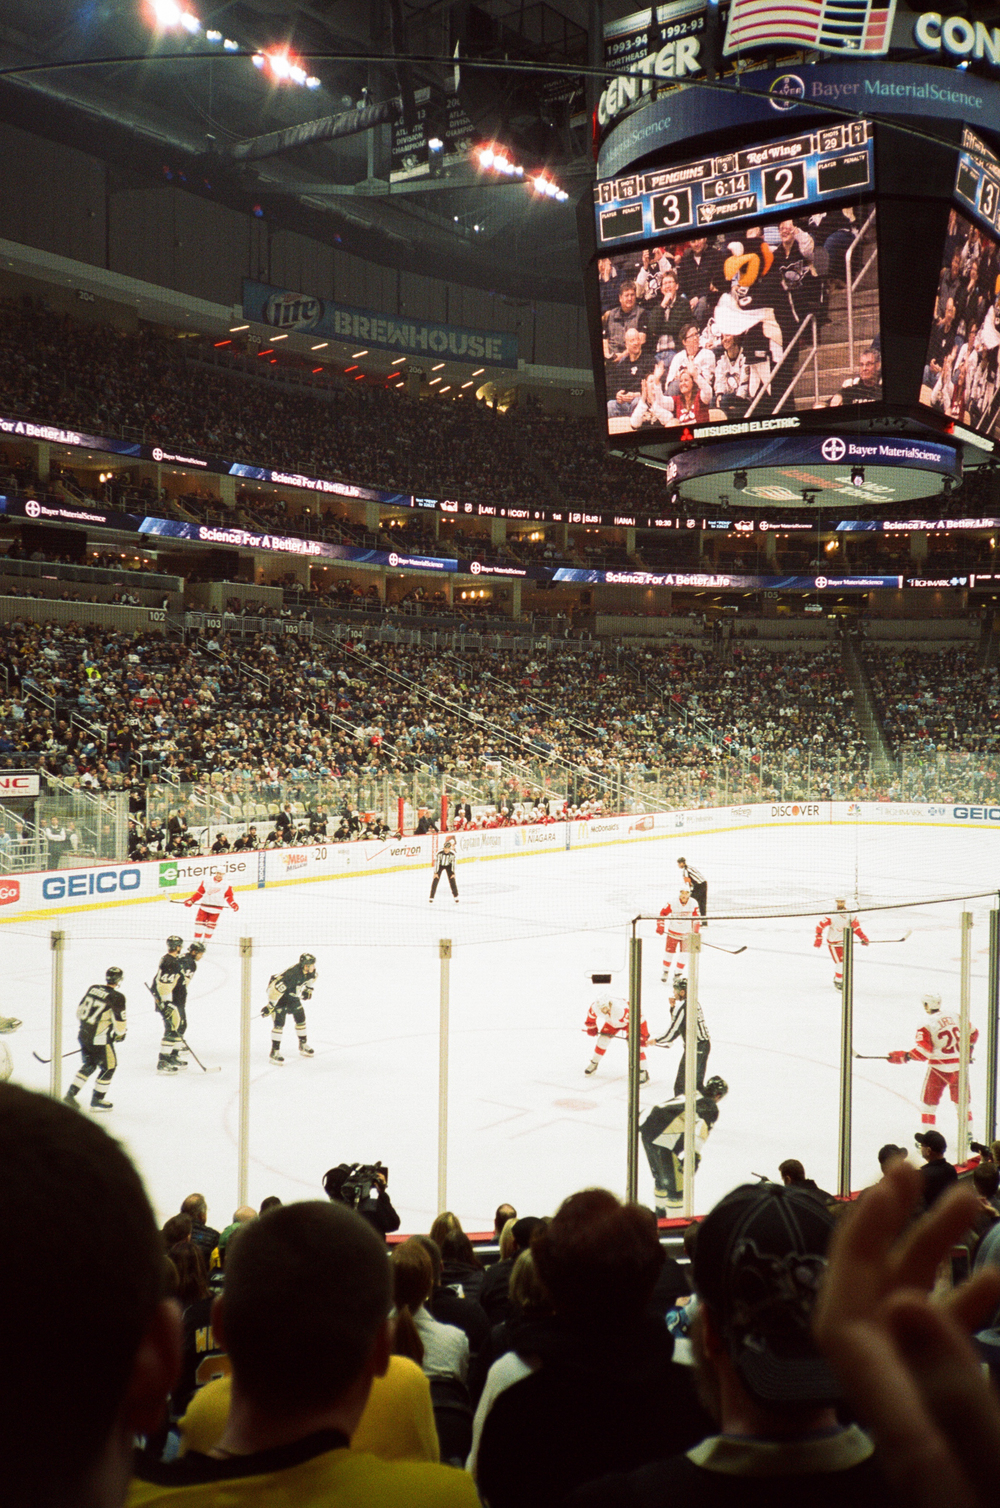 Hockey-Night-In-Pittsburgh-Film-Photography-Karlsson-051.jpg